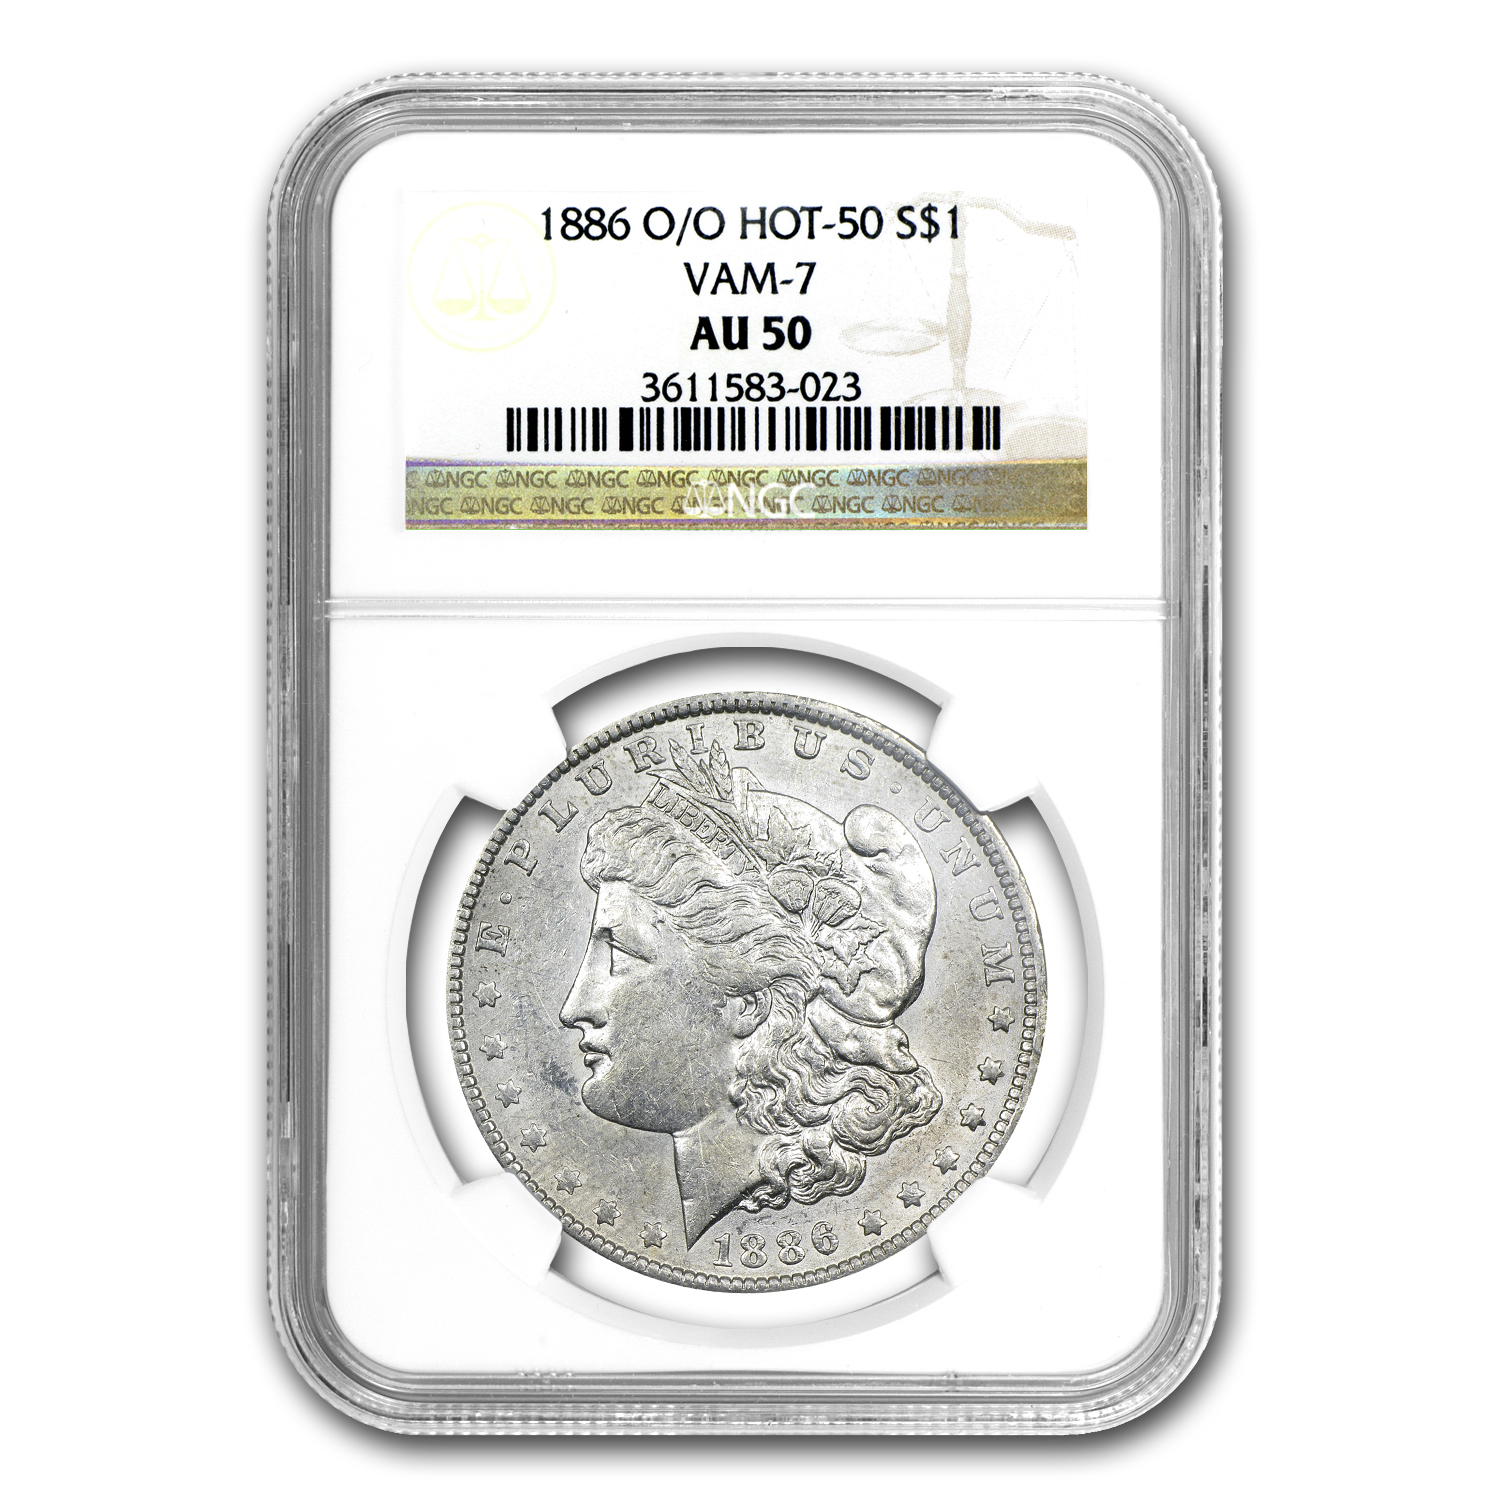 1886-O/O Morgan Dollar AU-50 NGC - VAM-7 Hot-50